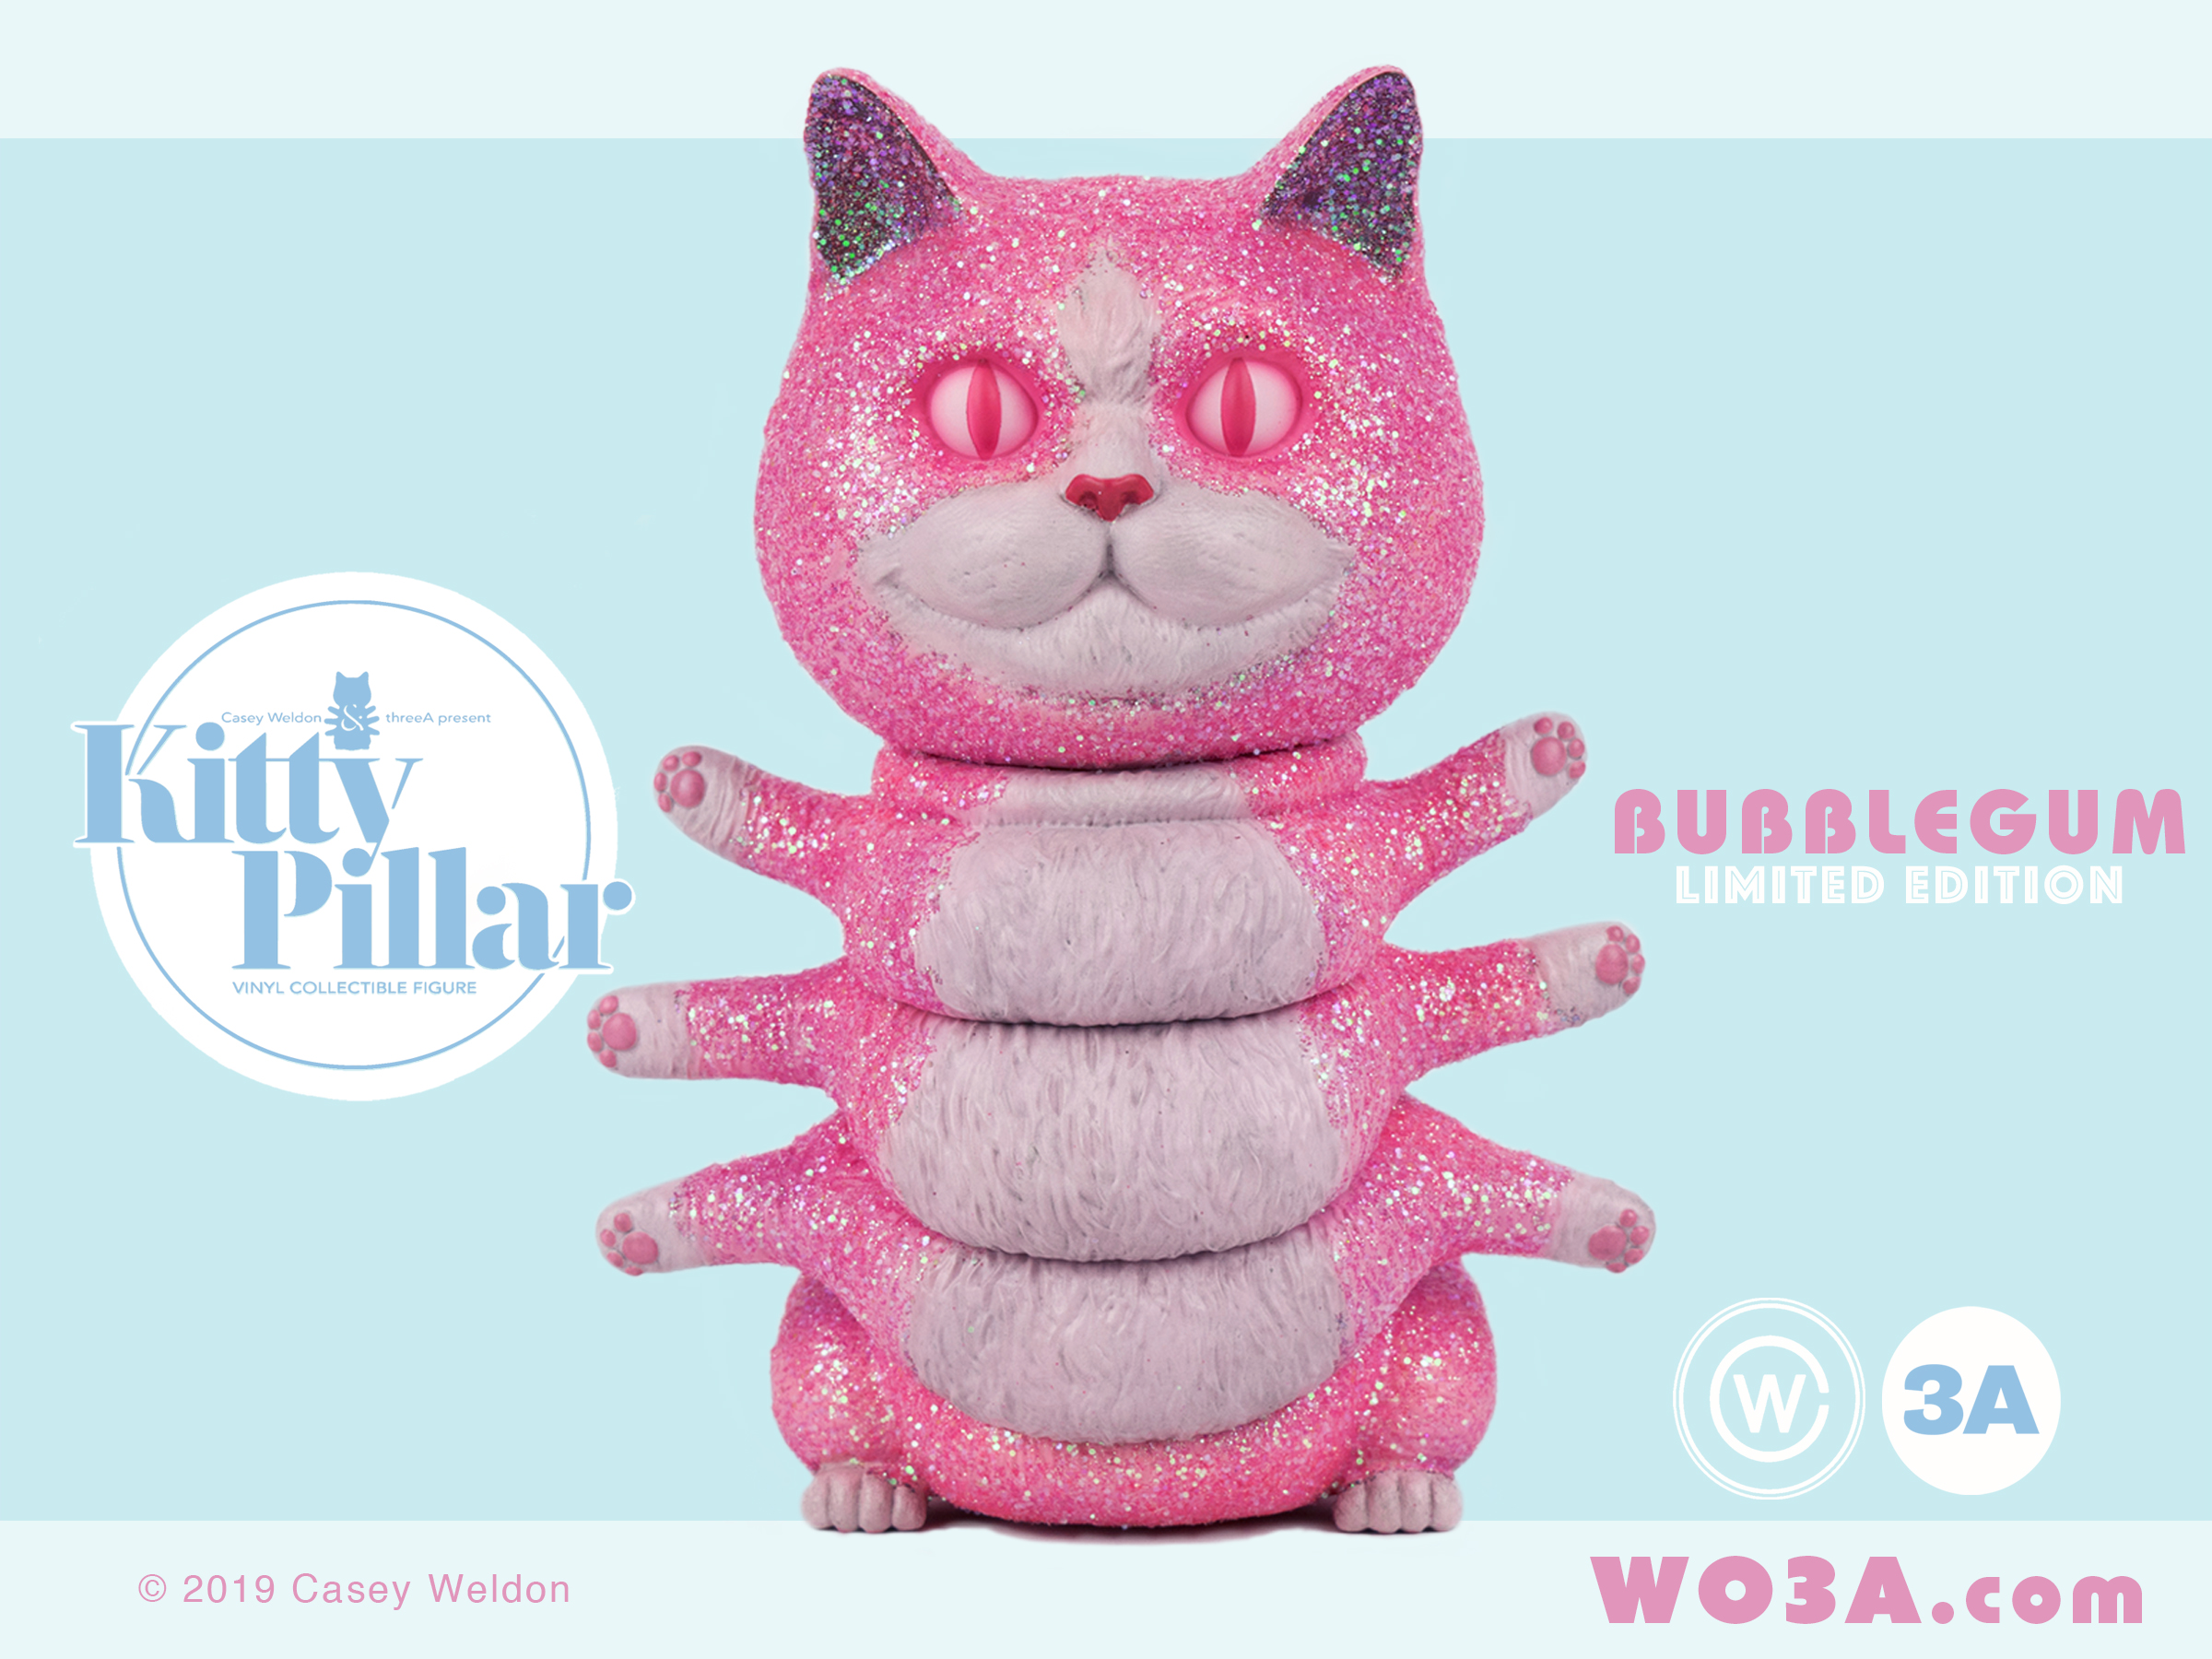 BUBBLEGUM - Pre-made edition available at the 3A Shop!